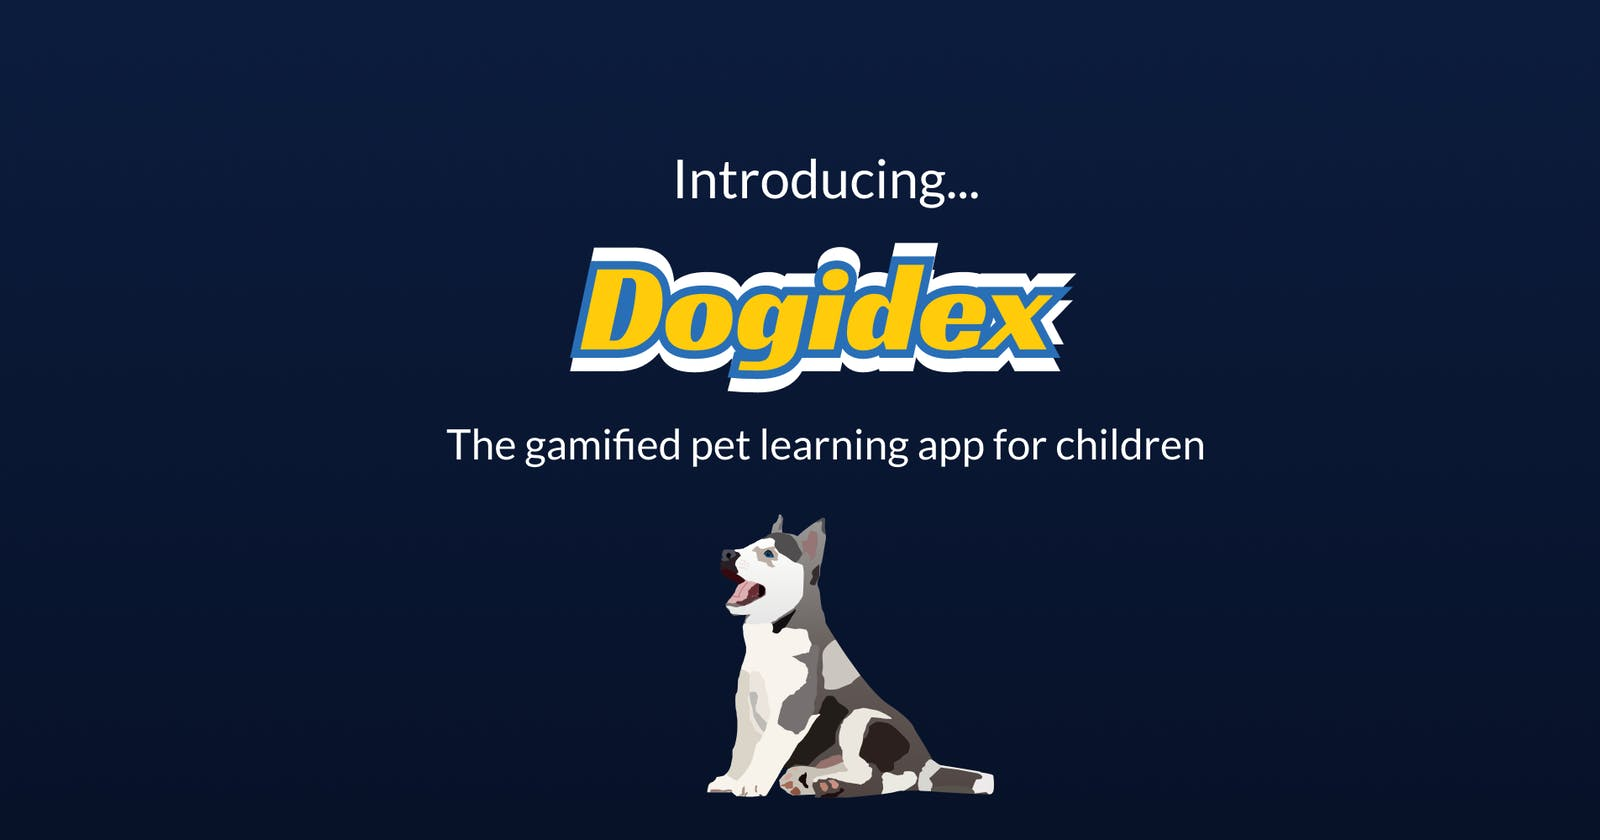 Introducing Dogidex the gamified pet learning app for children